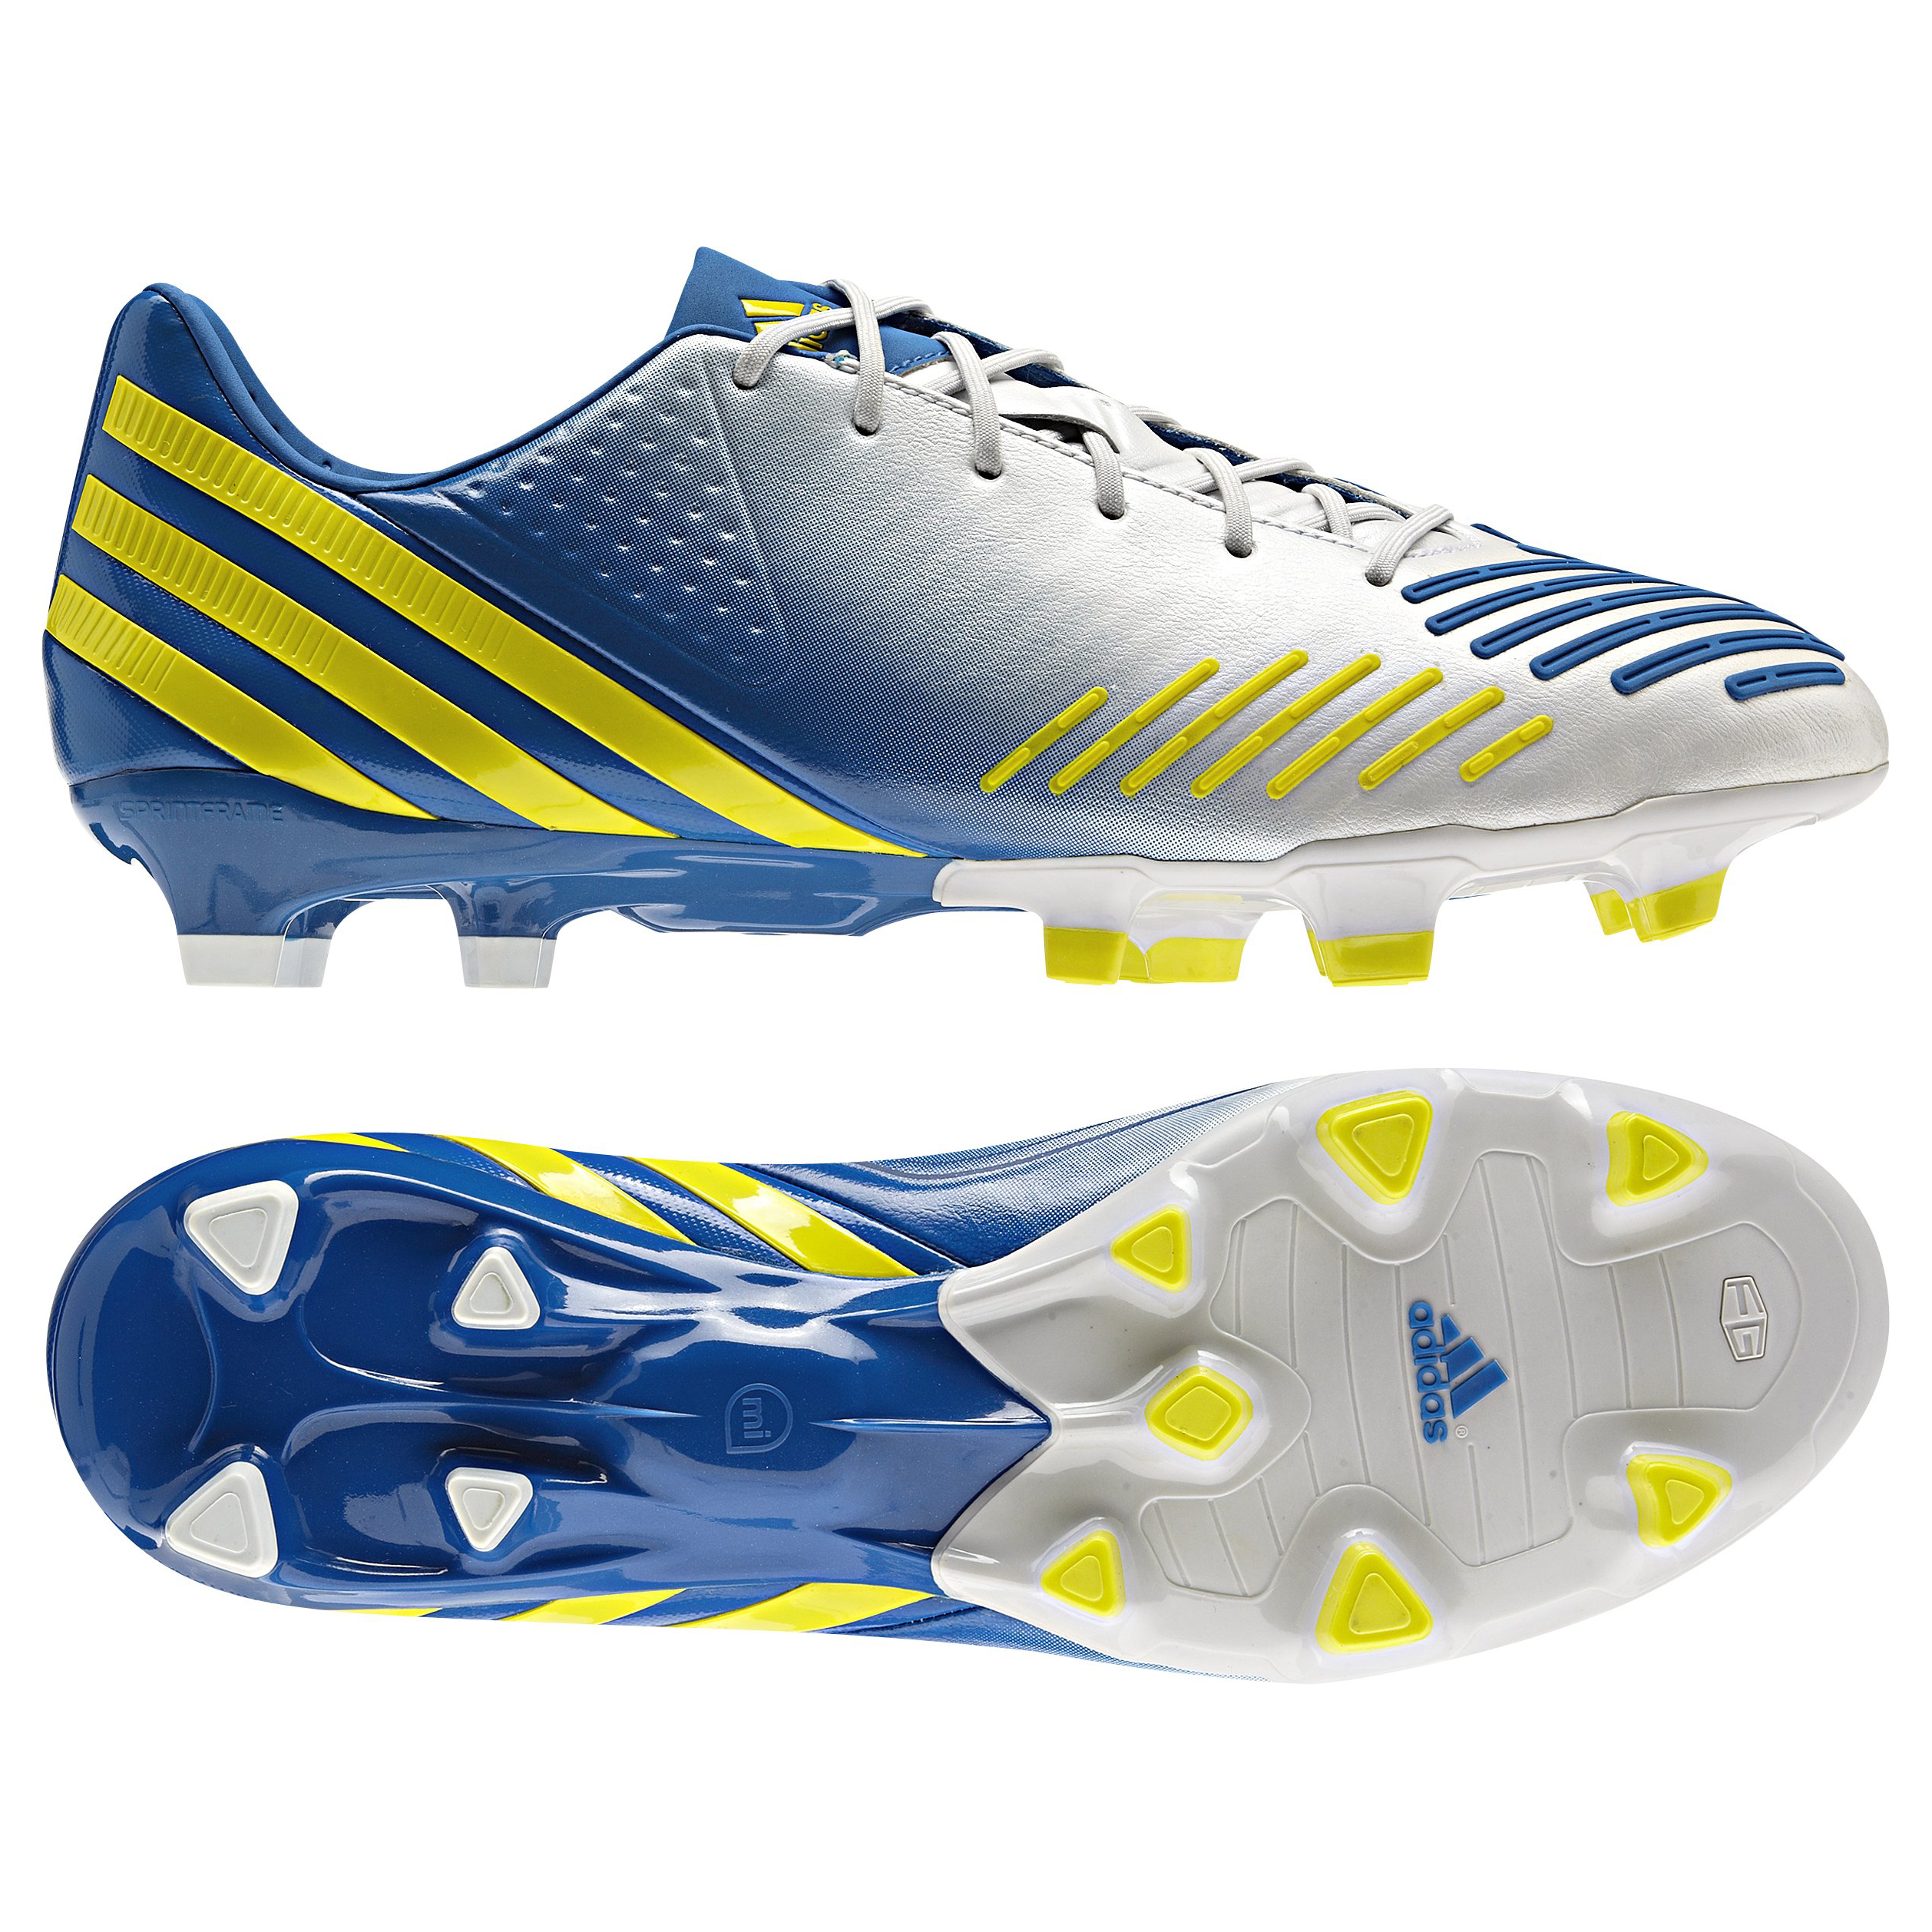 adidas Predator LZ TRX Firm Ground Football Boots - Running White/Vivid Yellow/Prime Blue